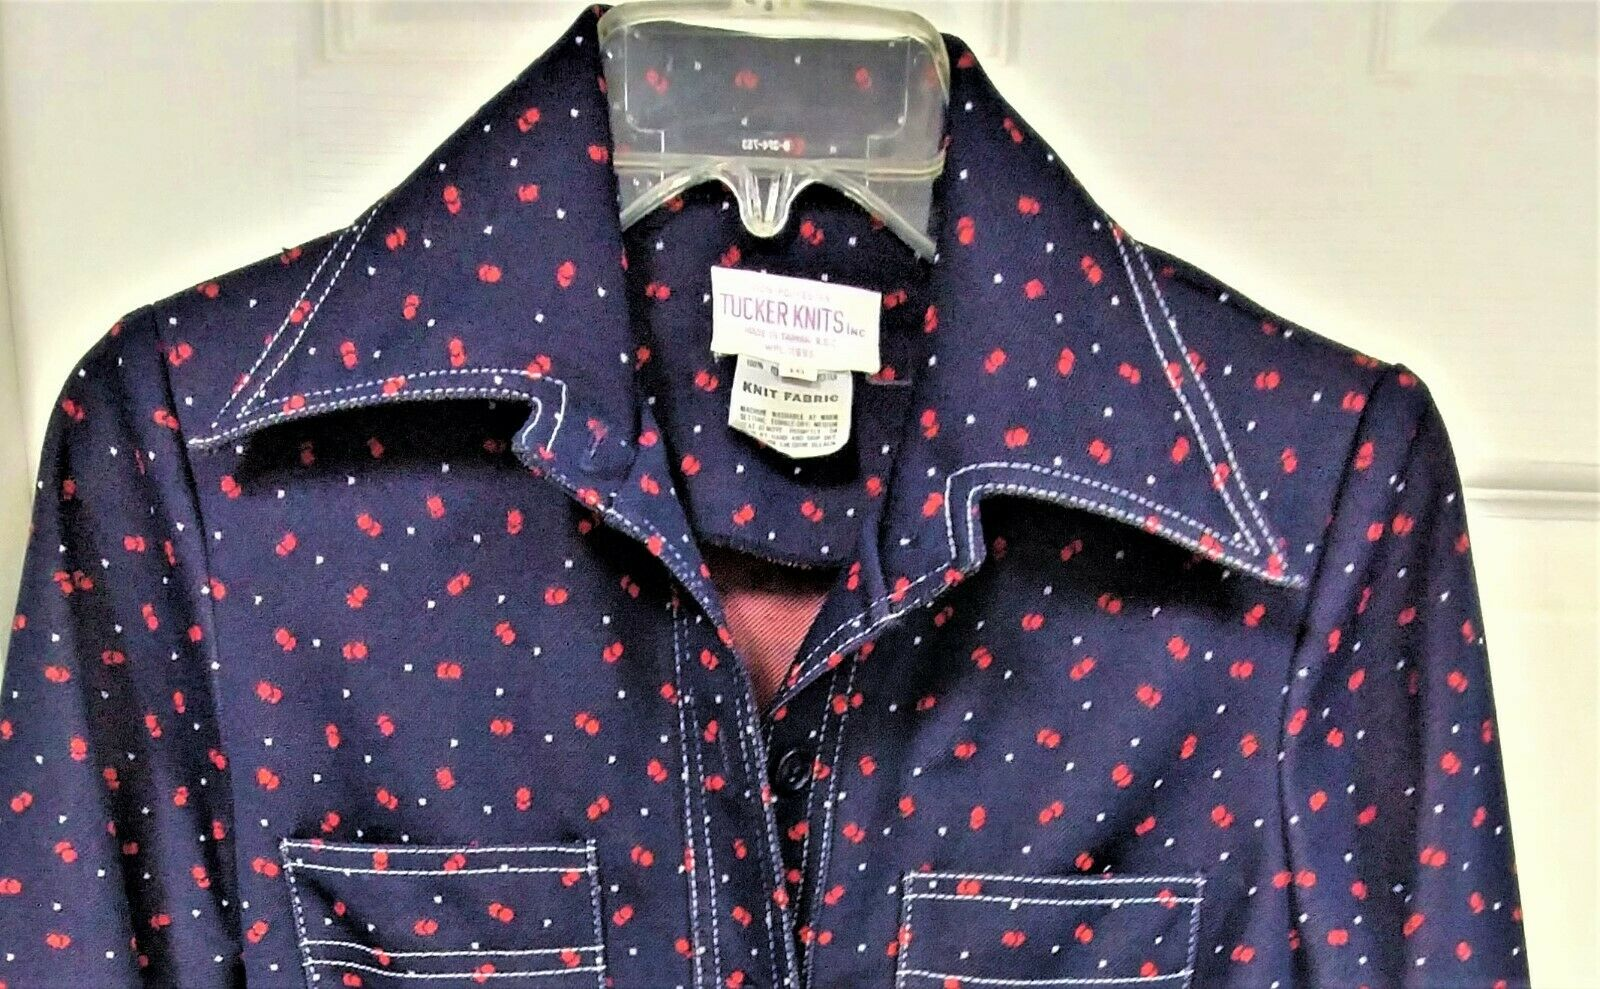 ~REDUCED~1970S WESTERN STYLE COWGIRL SHIRT/JACKET LONG TAILS TRUE VINTAGE WOMENS